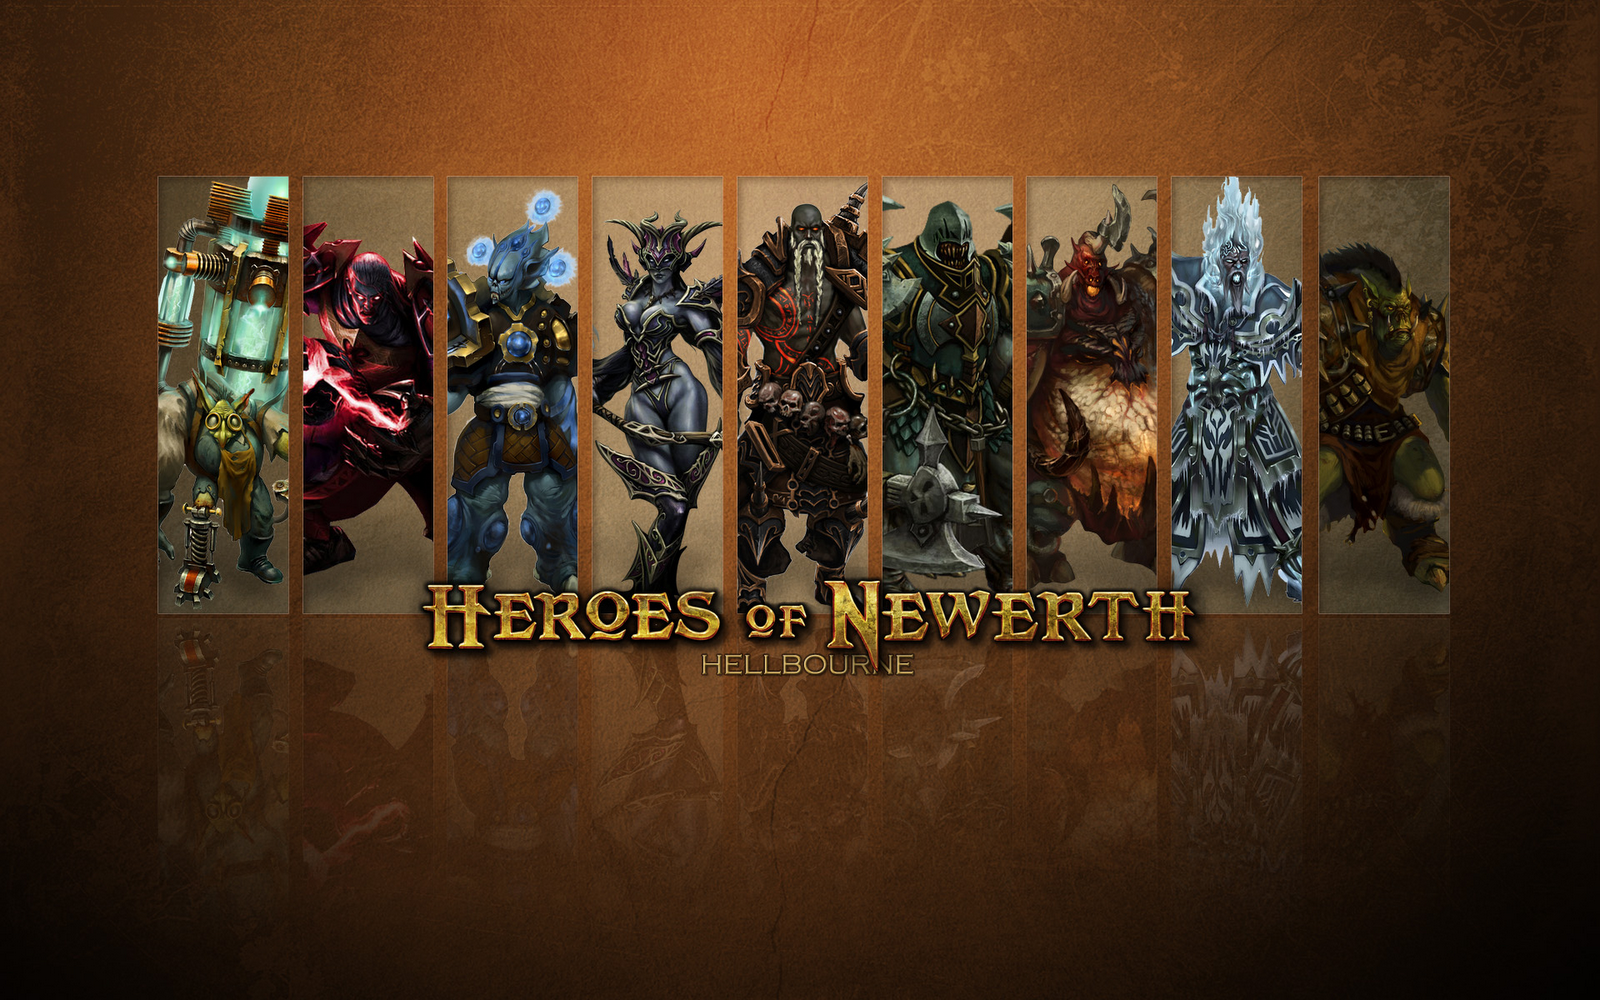 Heroes of Newerth wallpaper 3